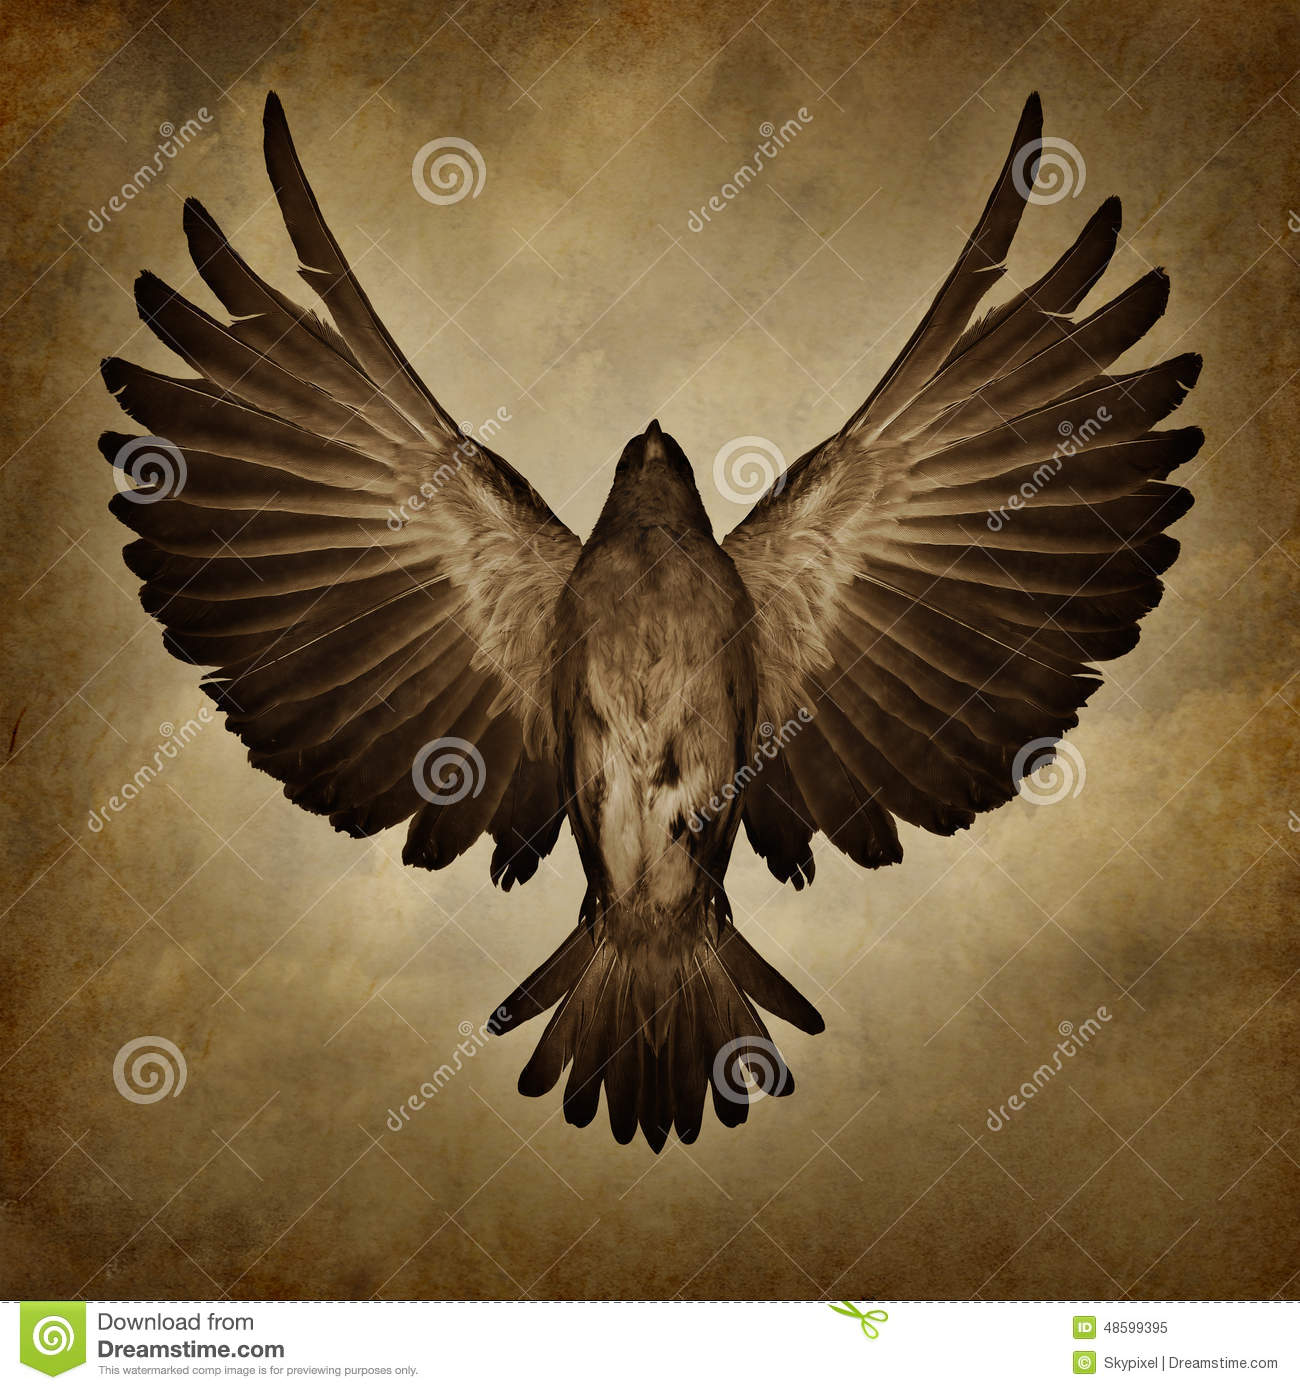 ... symbol as a bird with open spread feathers flying upward to success